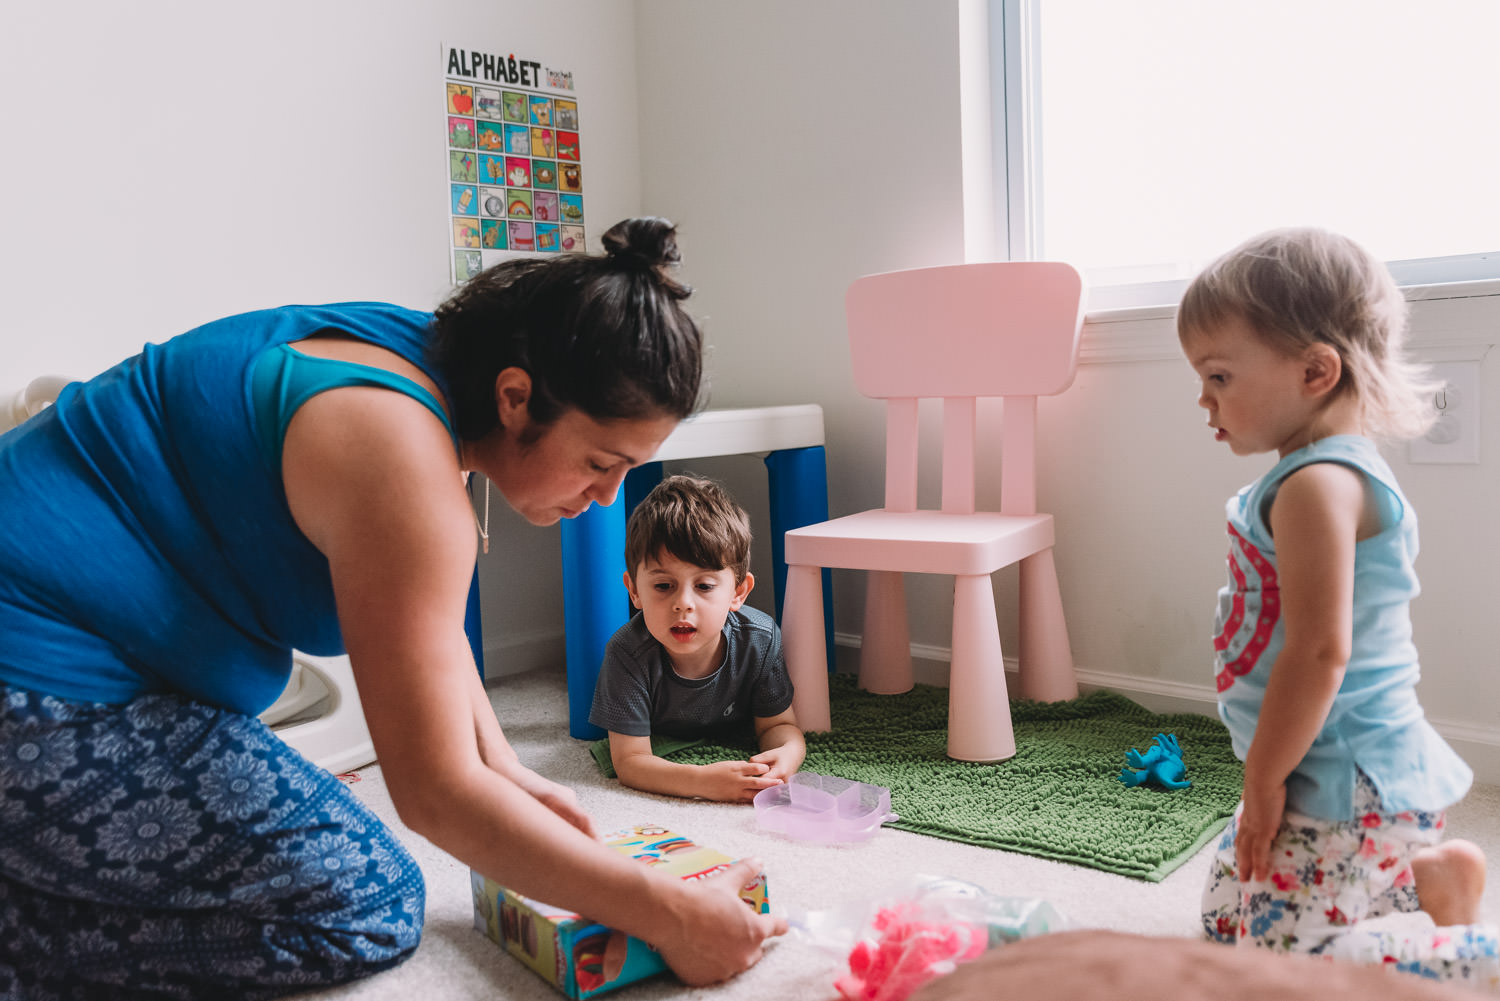 Two kids play with their mom in their playroom.